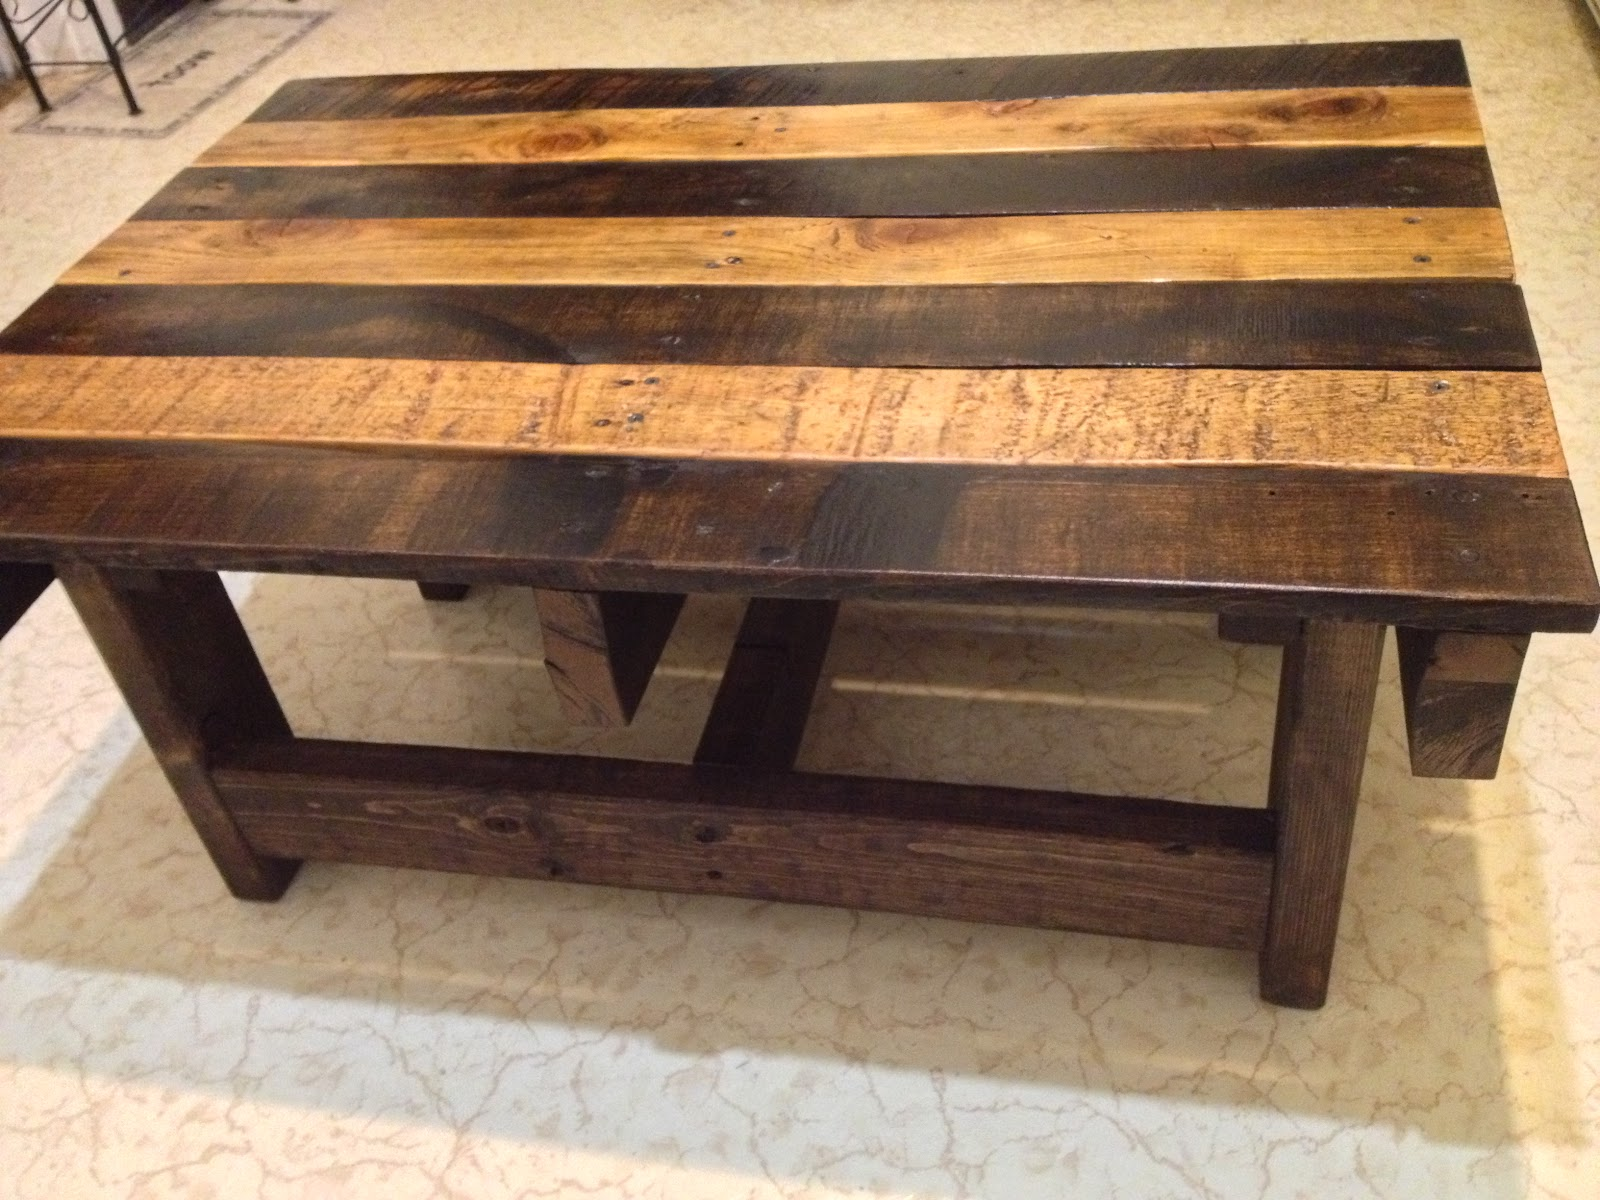 Black Reclaimed Wood Coffee Tables For Sale